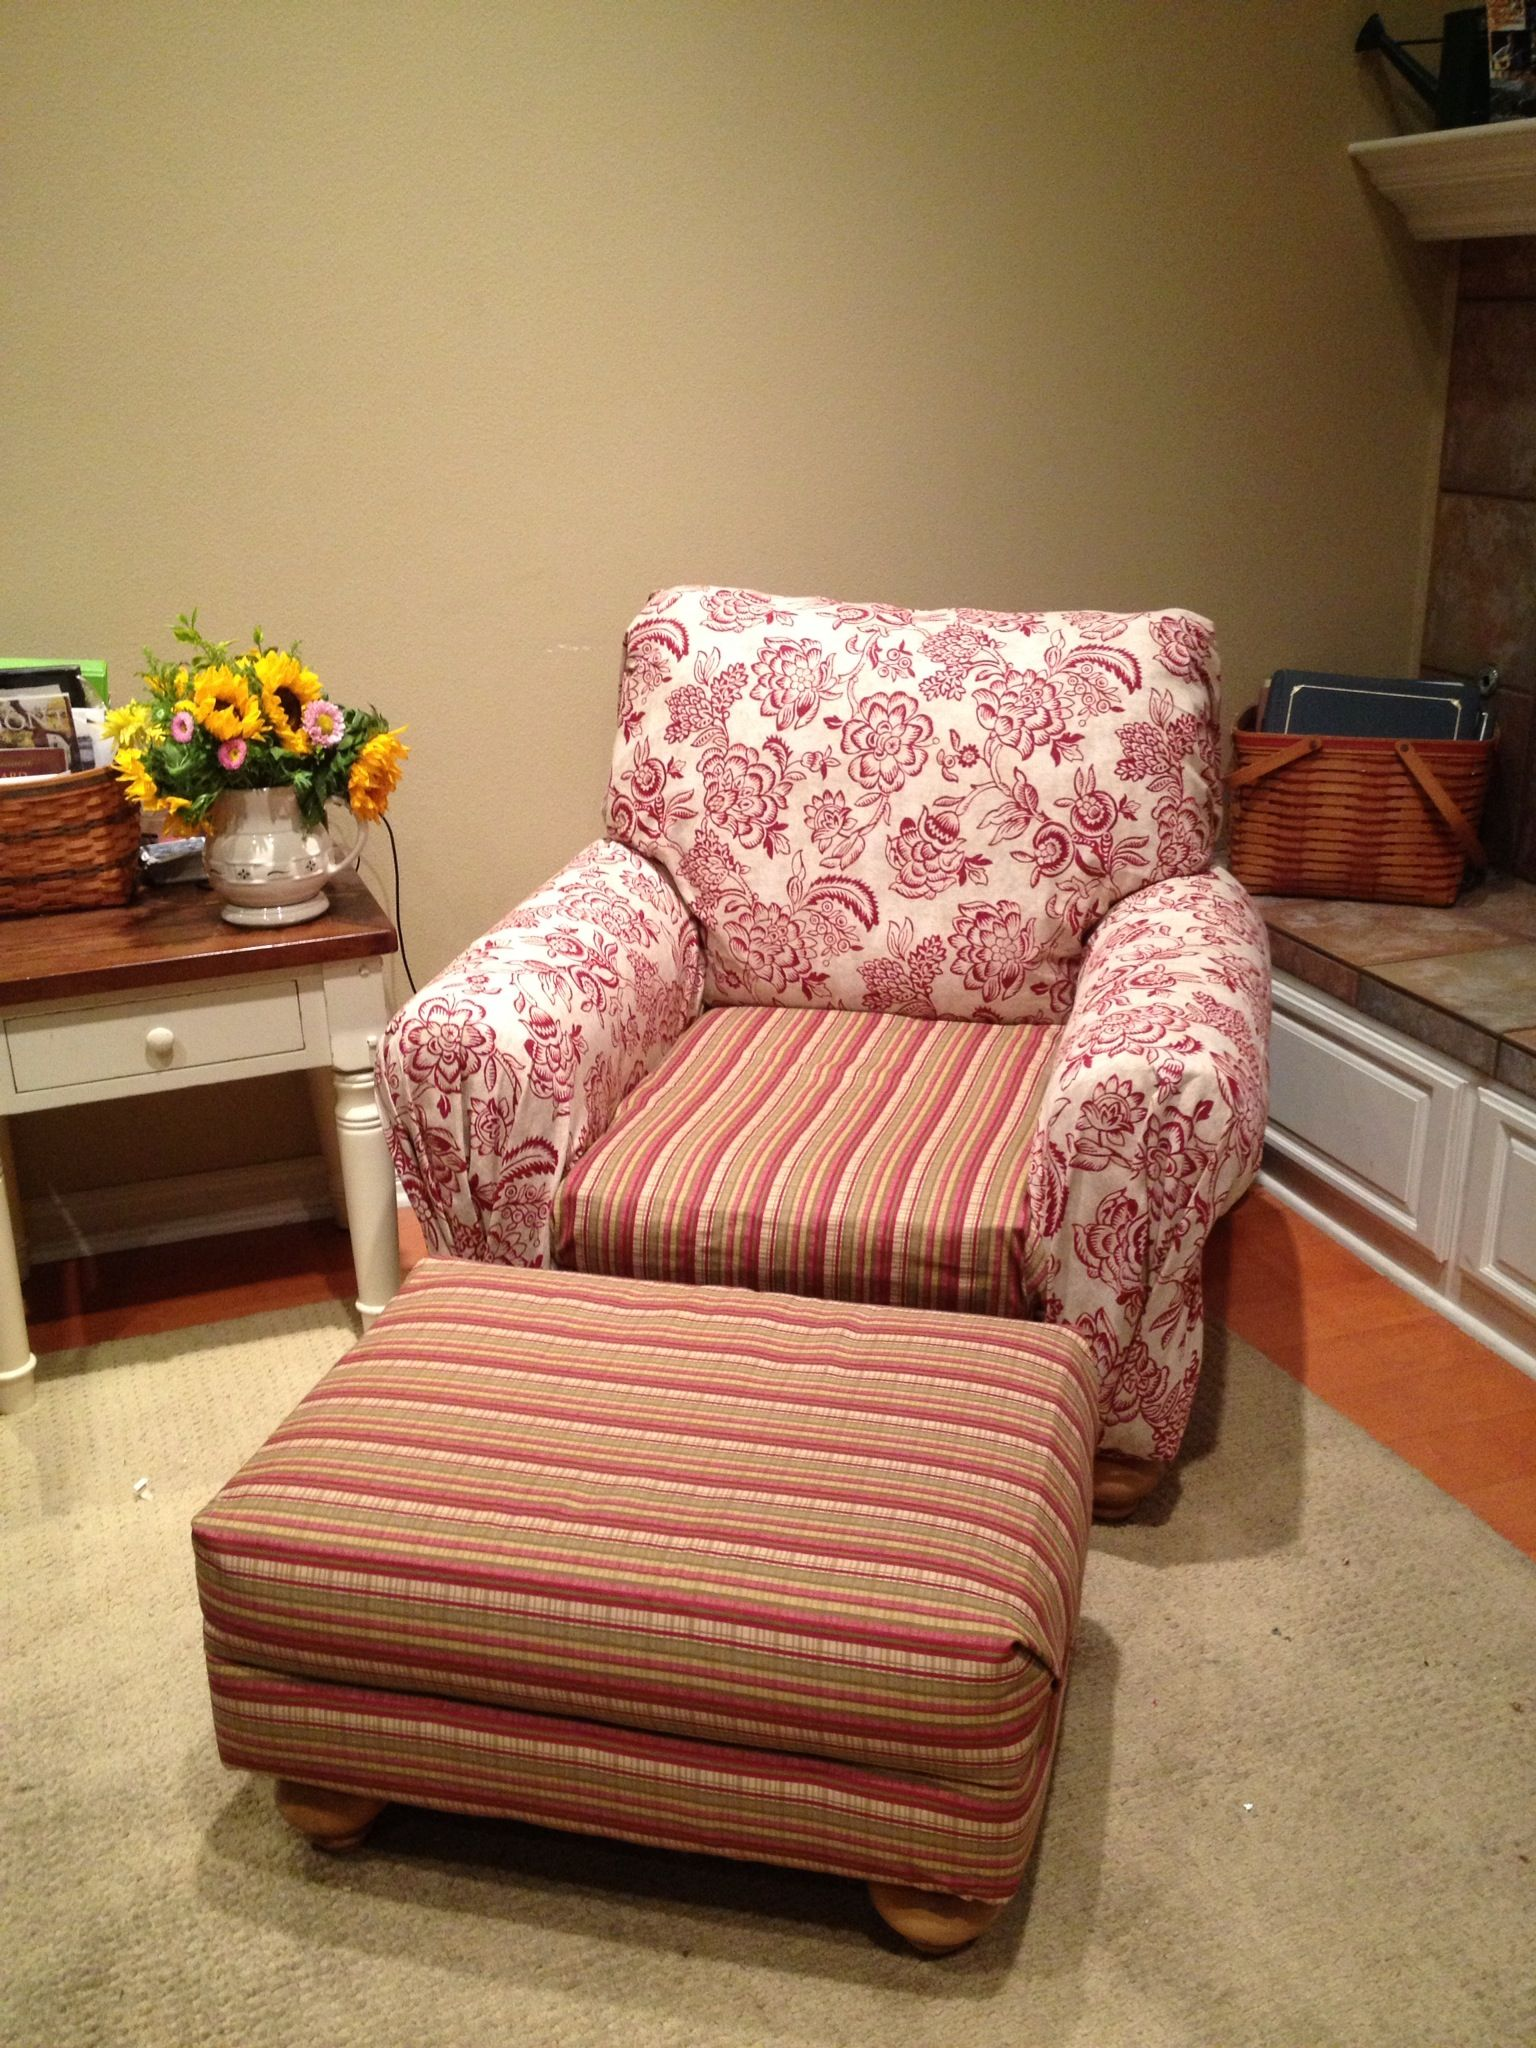 How To Reupholster A Sofa No Sew Klaussner Reclining Leather Reupholstered Chair And Ottoman Mixed Patterns I